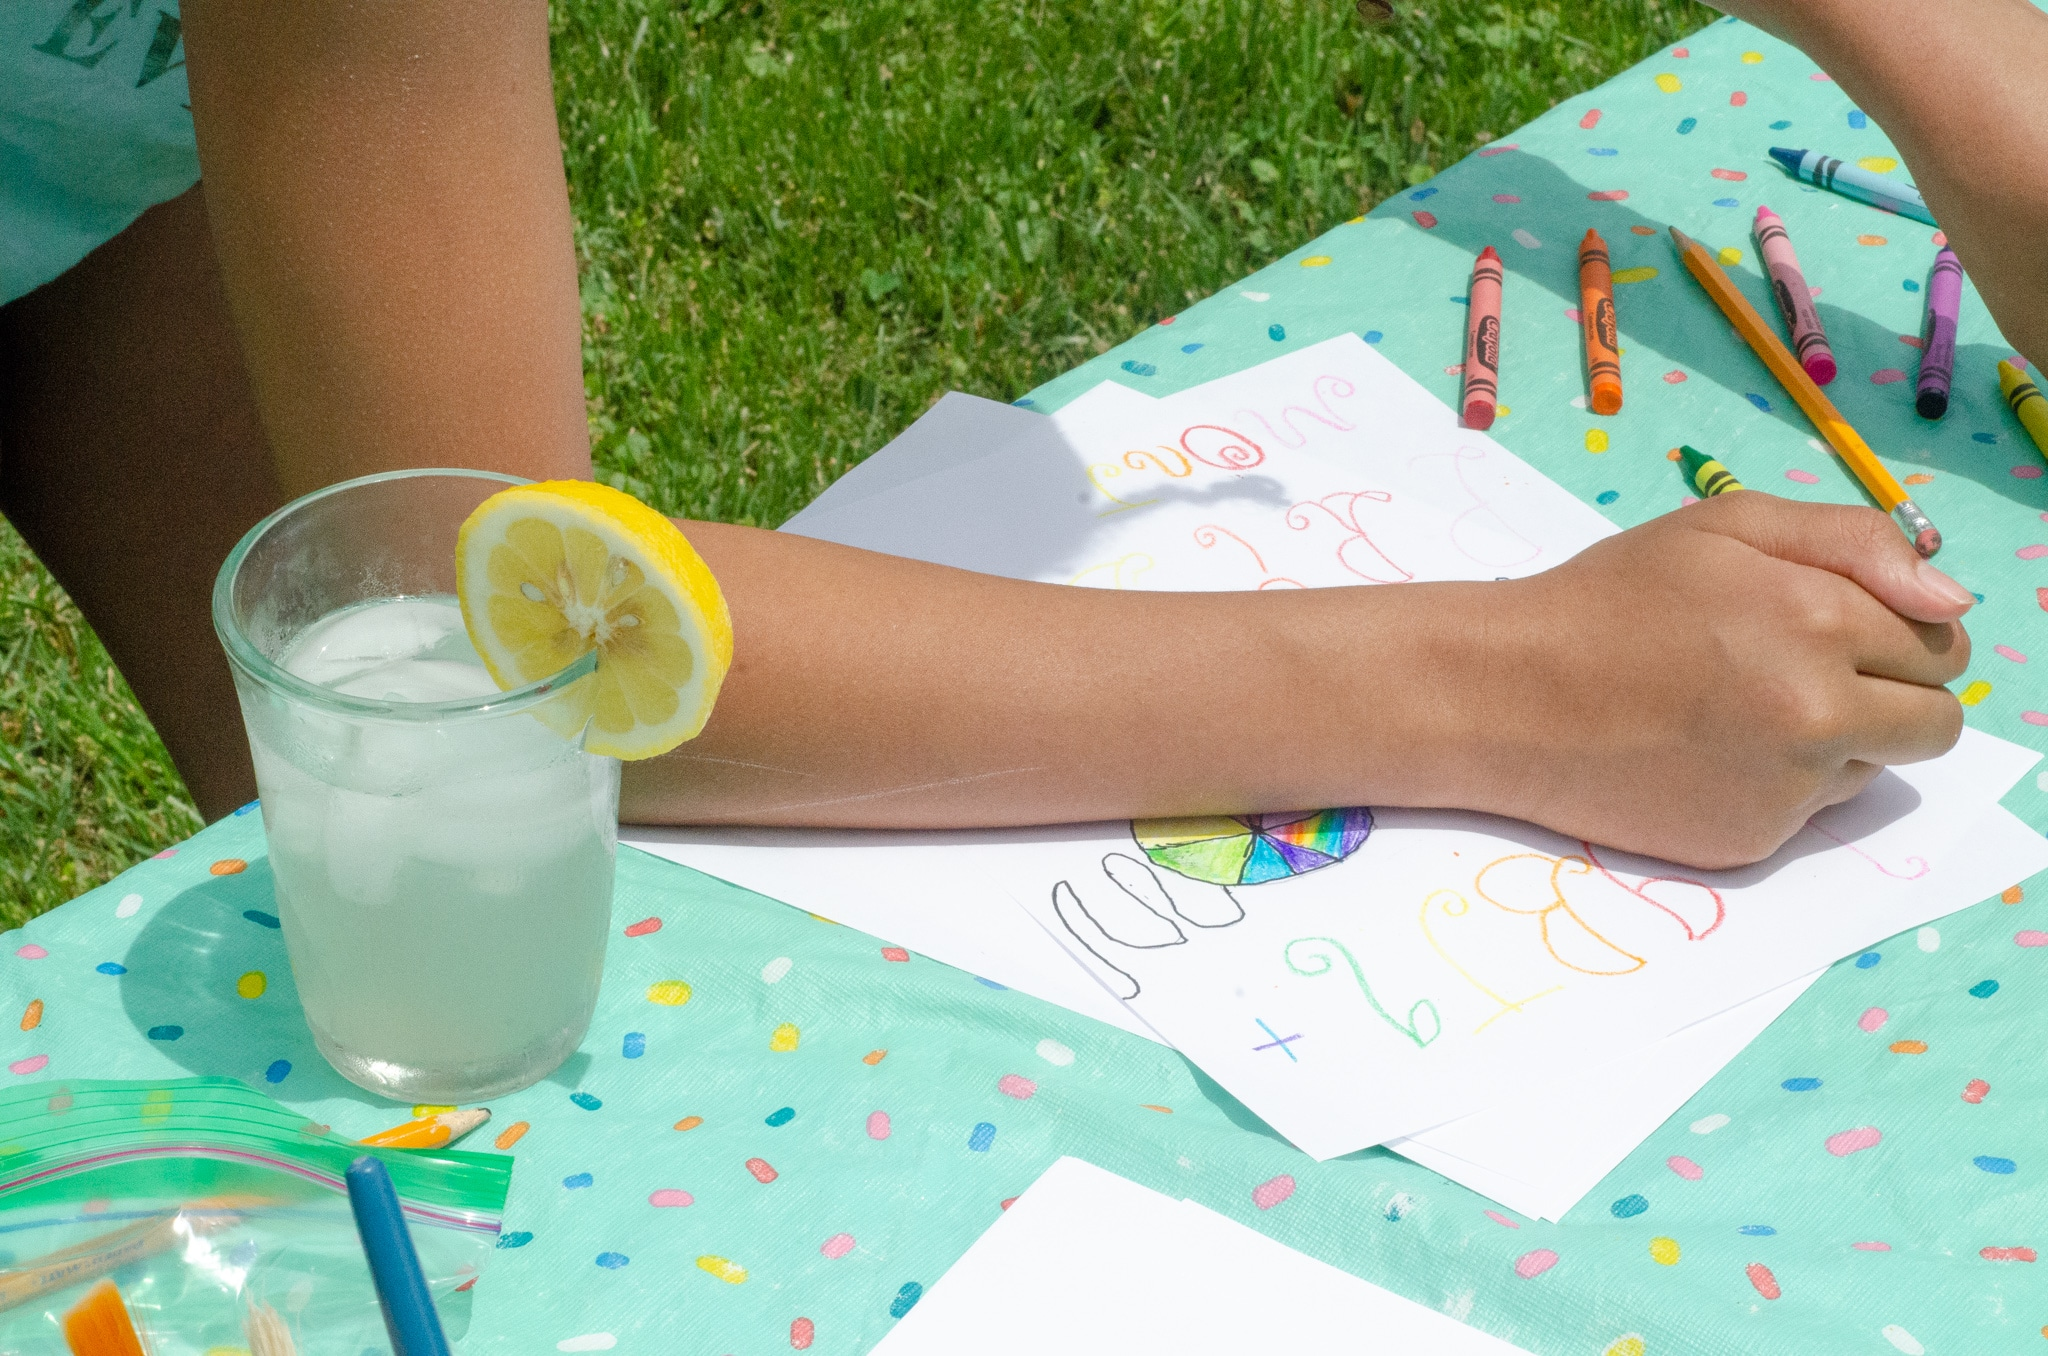 Lemonade Inspired Art Keturah Coloring. Looking for a fun way to keep the kids entertained this summer? Celebrate the start of summer with Lemonade-Inspired Art In the Backyard.